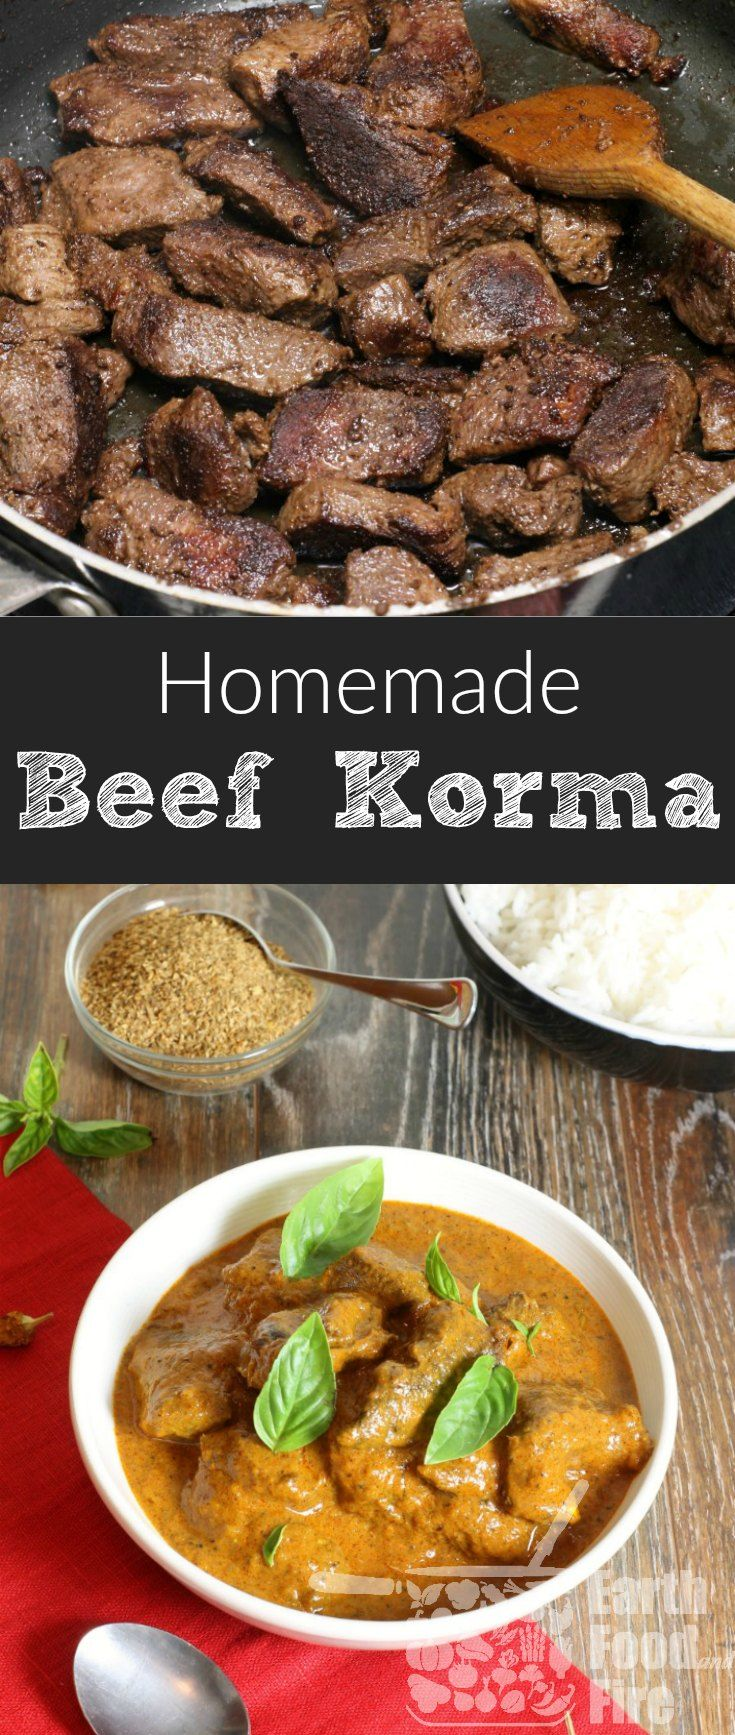 A popular curry dish with Persian and Indian history, this beef korma recipe is easy to make at home with everyday ingredients. Create your own curry blend or use a store bought one to make this simple and flavorful beef korma any day of the week.  #curry #beef #korma #glutenfree via @earthfoodandfire